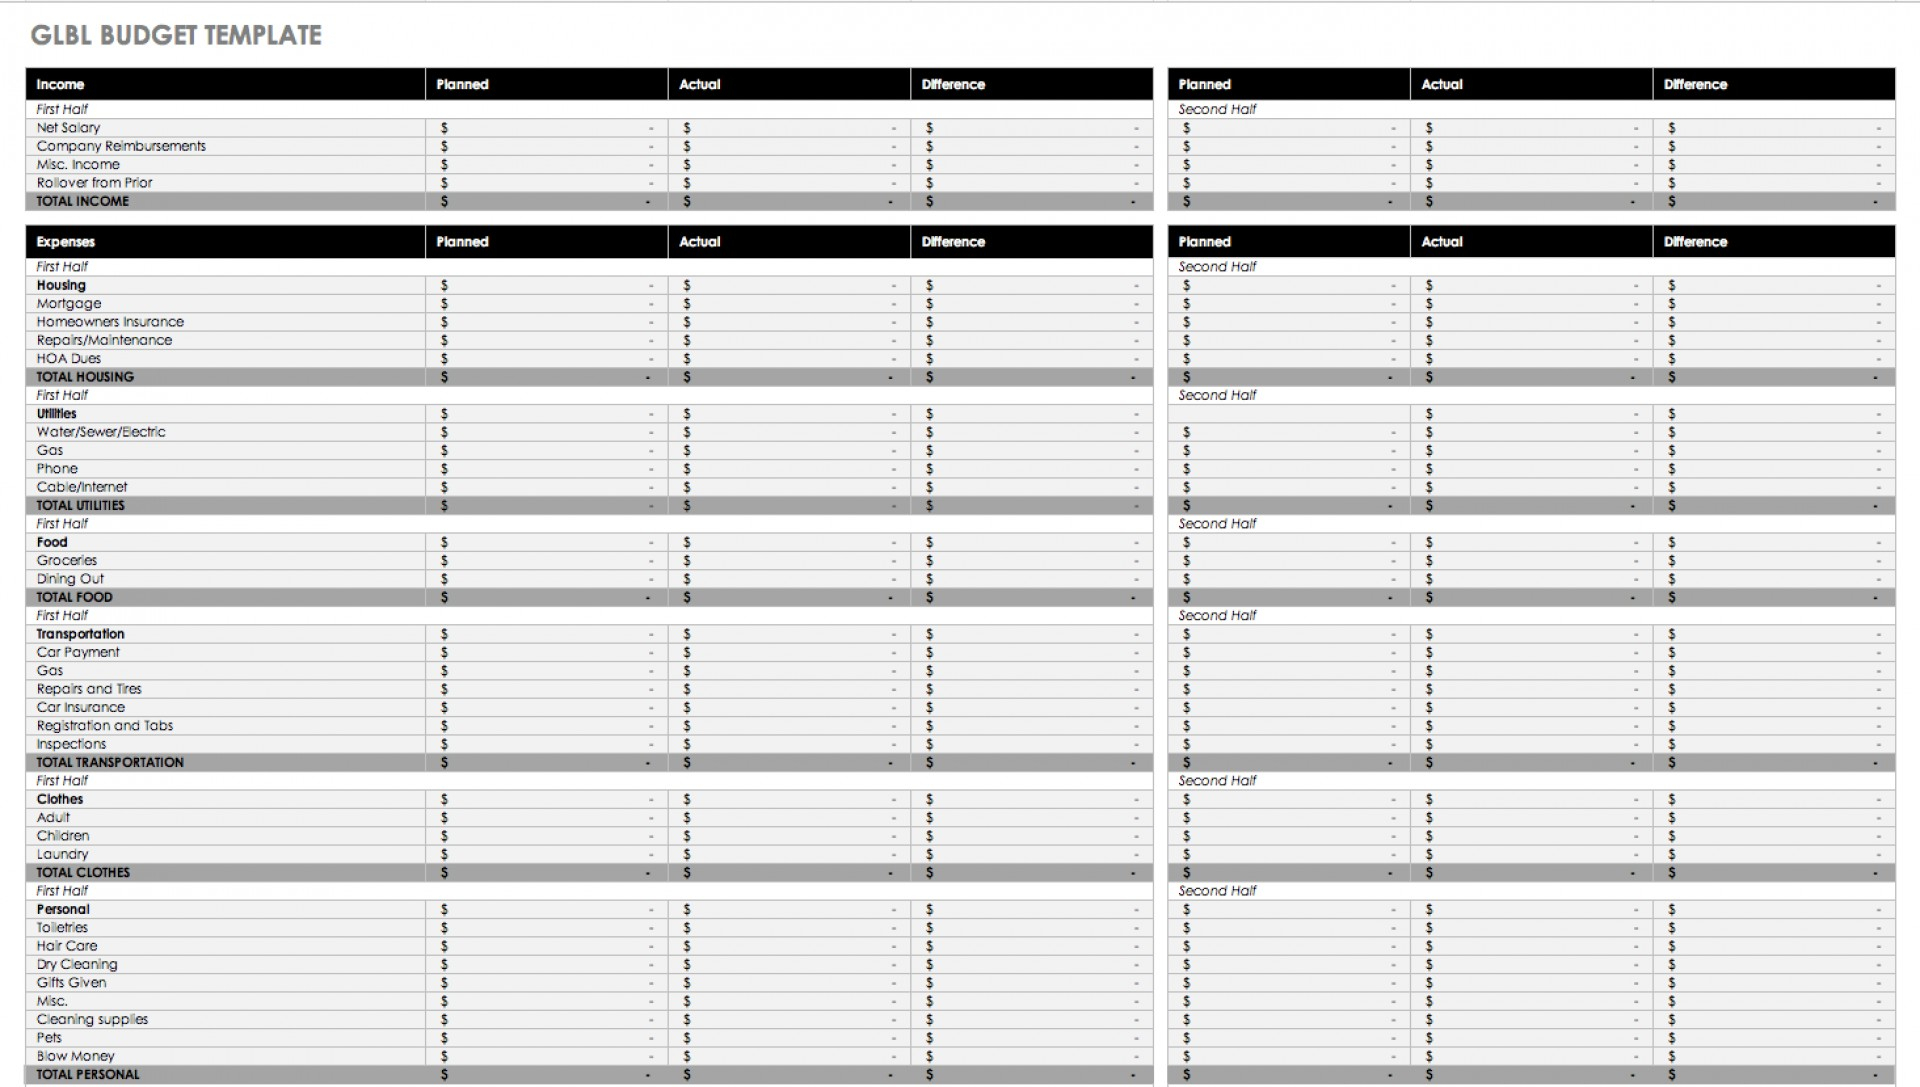 Excel Spreadsheet Templates Uk for 014 Free Excel Spreadsheet Templates Template Ideas For Bills Budget